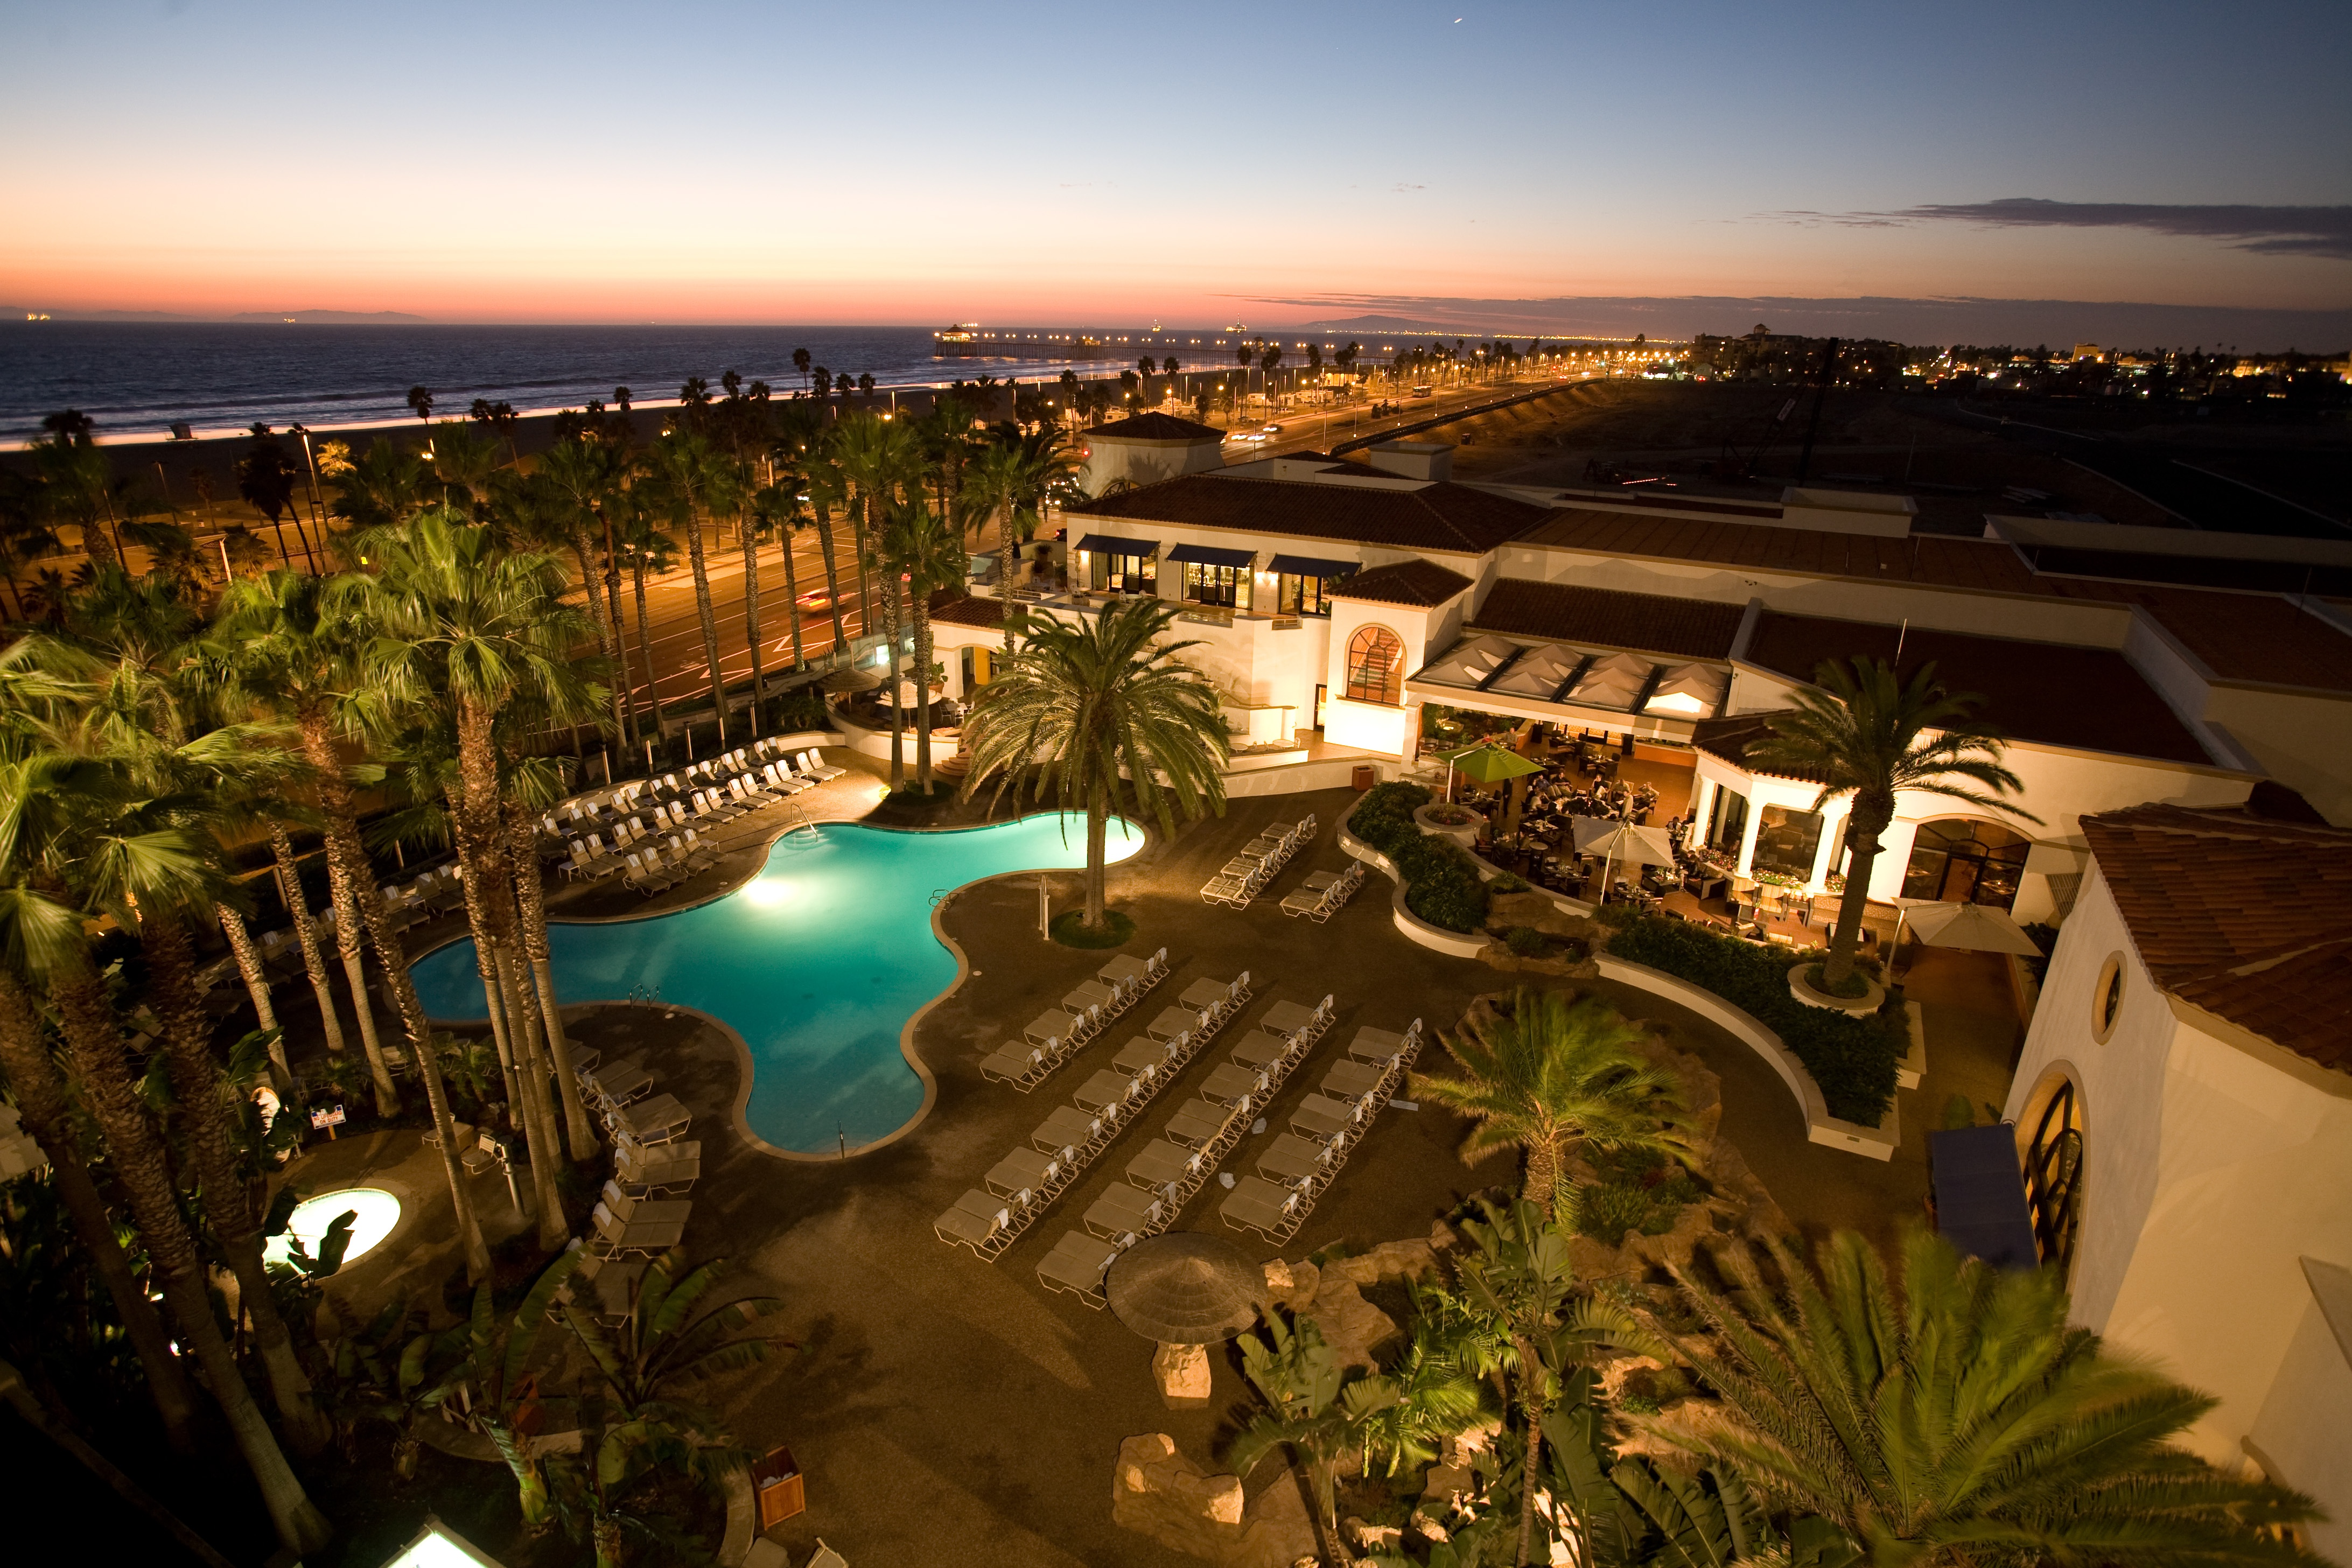 The Waterfront: The Ultimate Orange County Experience